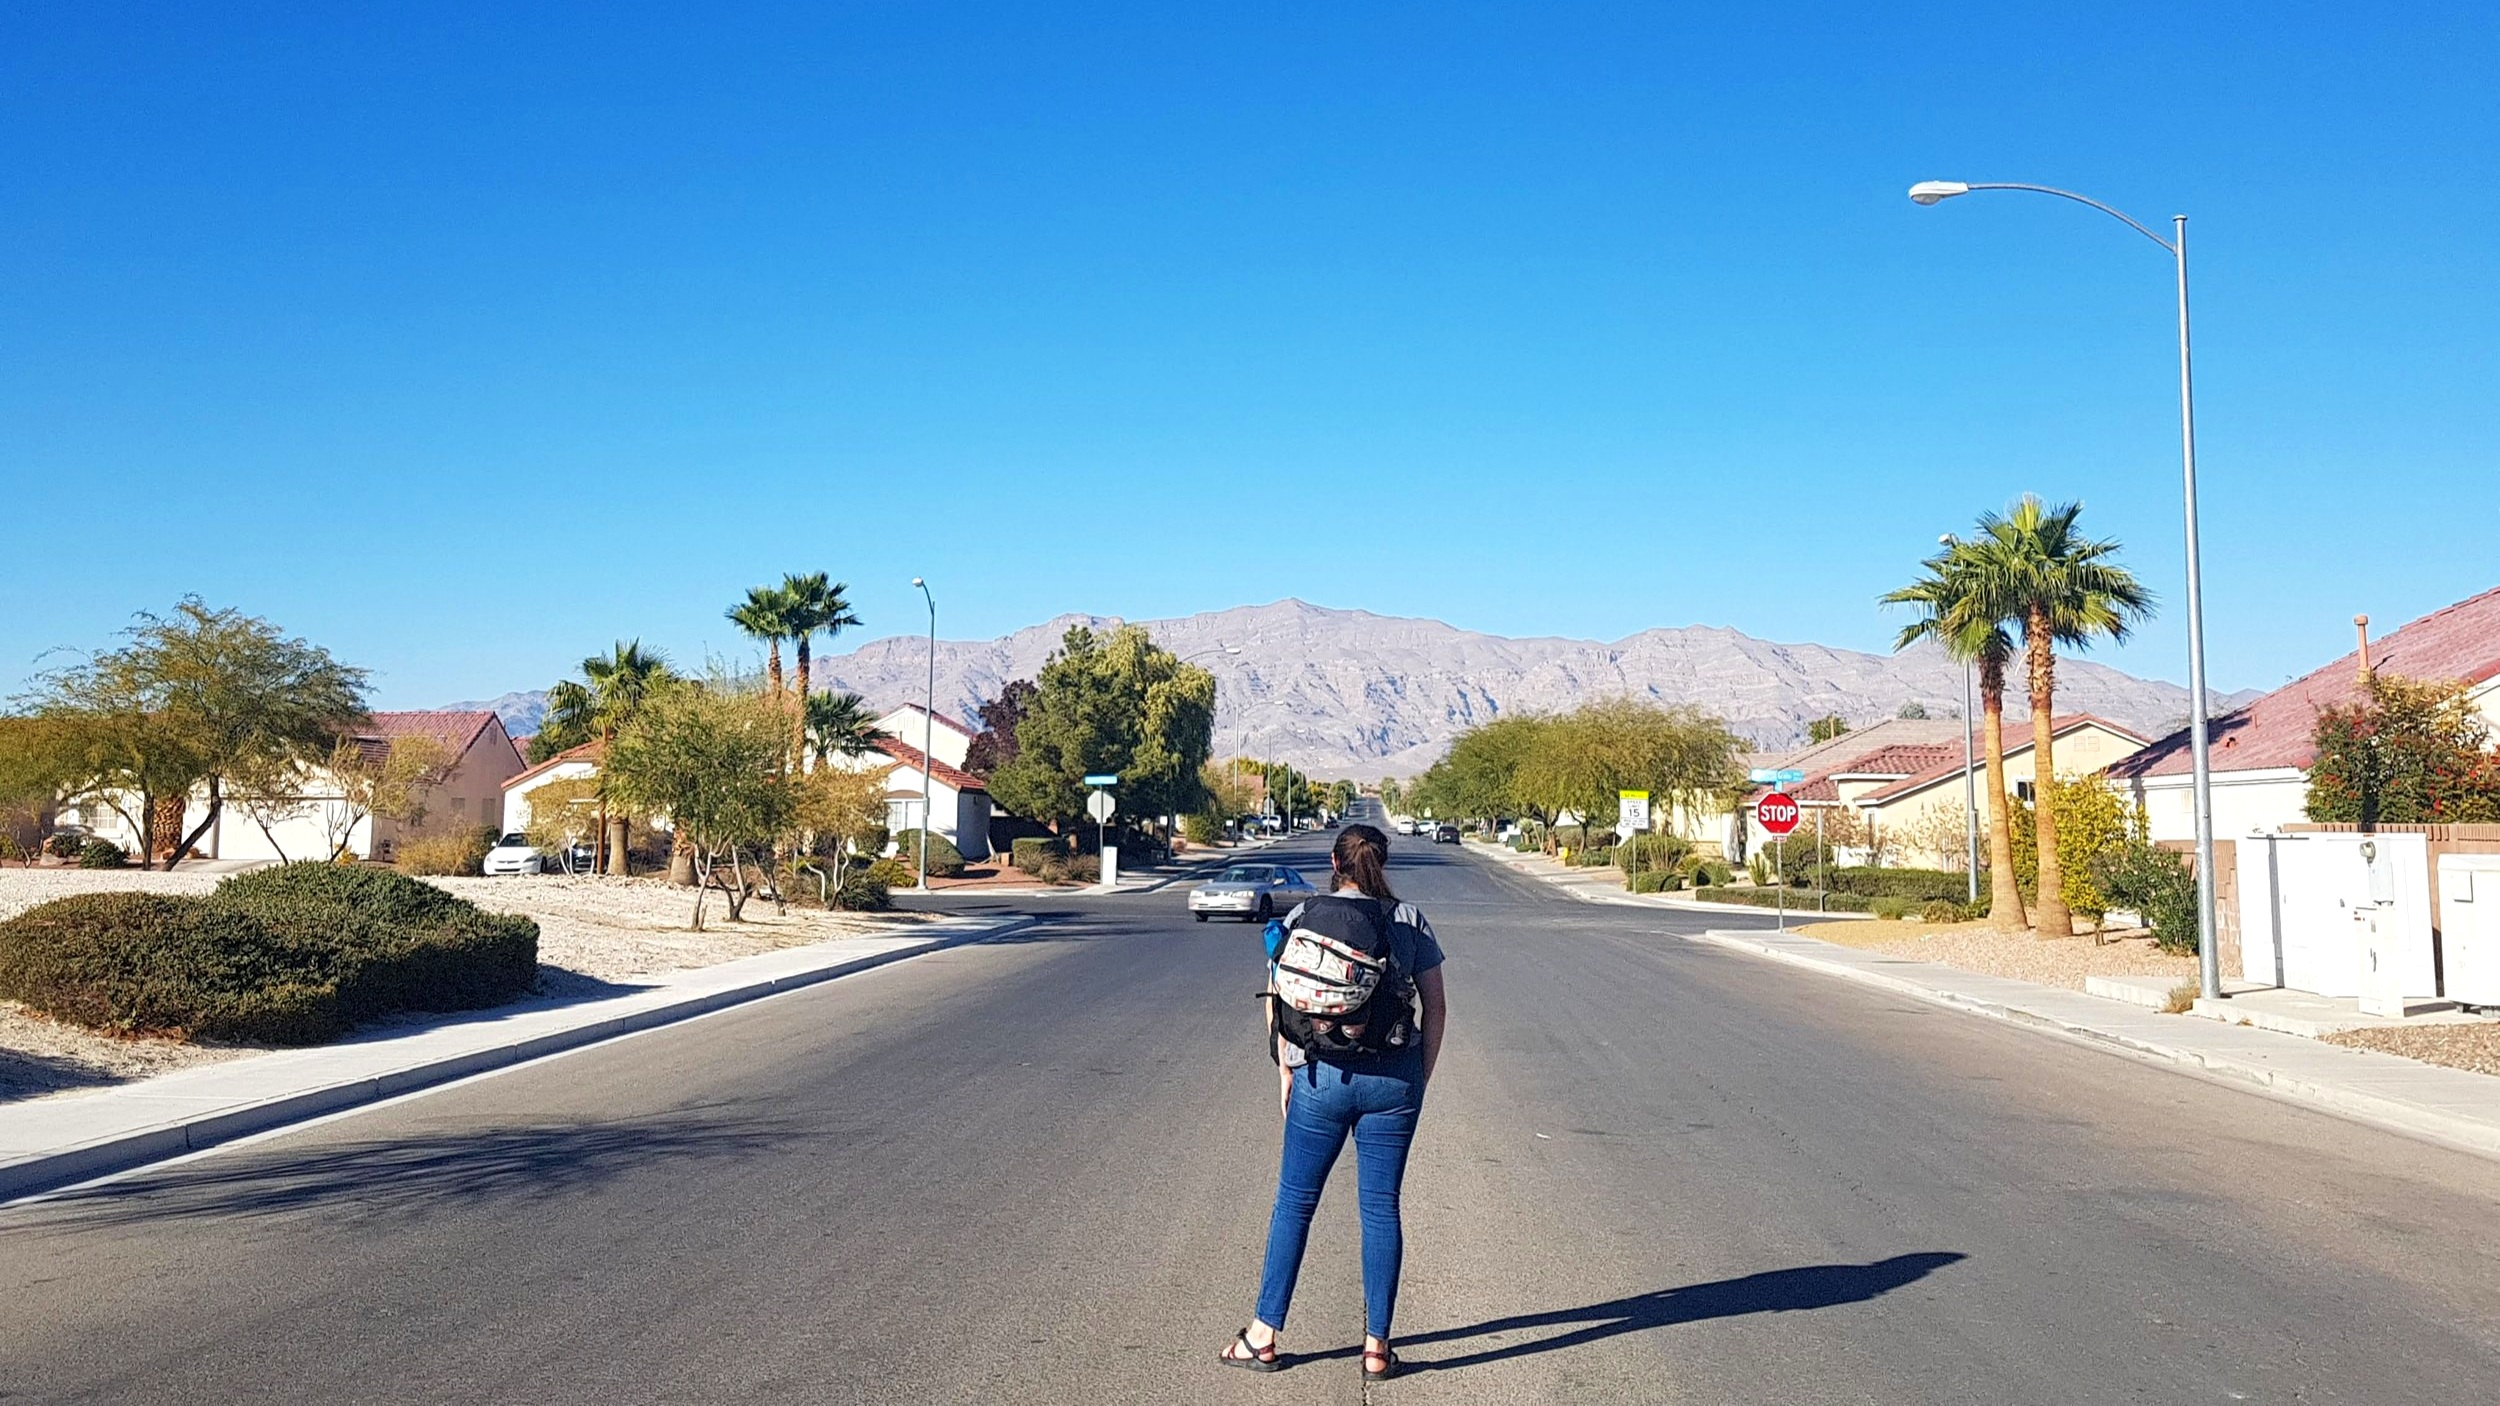 Walking to the store to buy Justins Nut Butter packets from my couchsurfing hosts house in Las Vegas, Nevada.